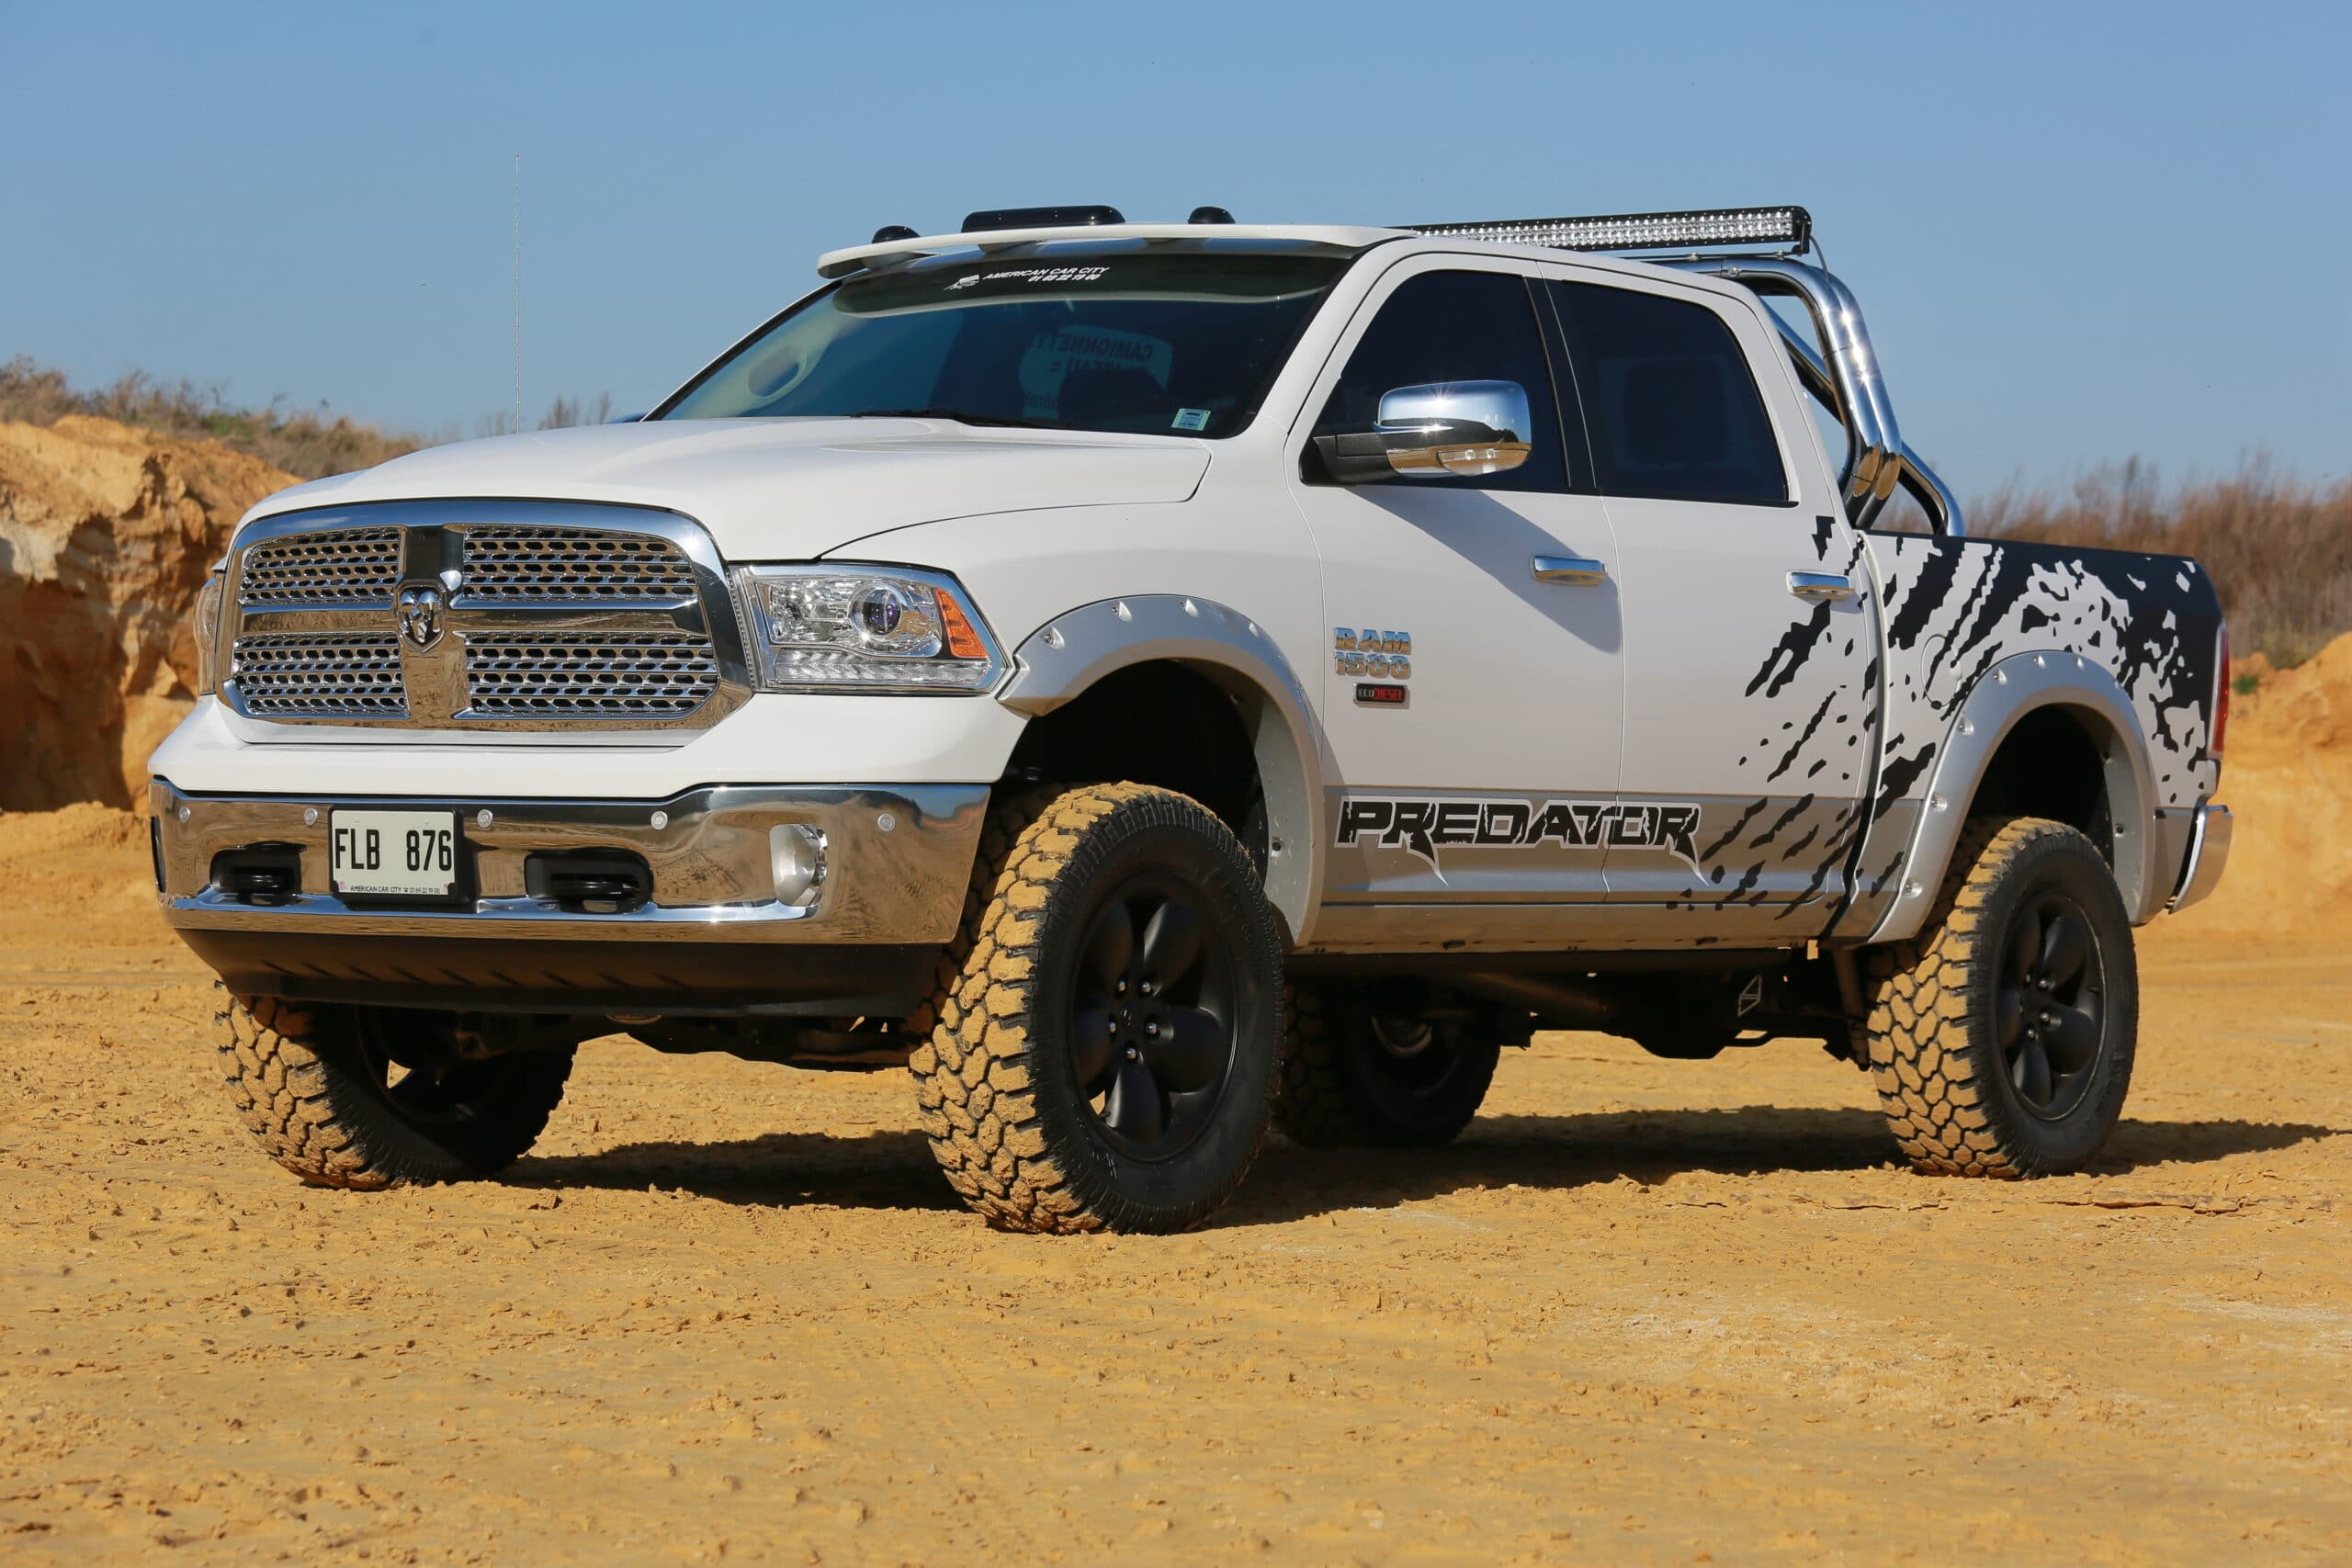 Dodge Ram Predator 1500 EcoDiesel American Car City - Generation 4x4 ...